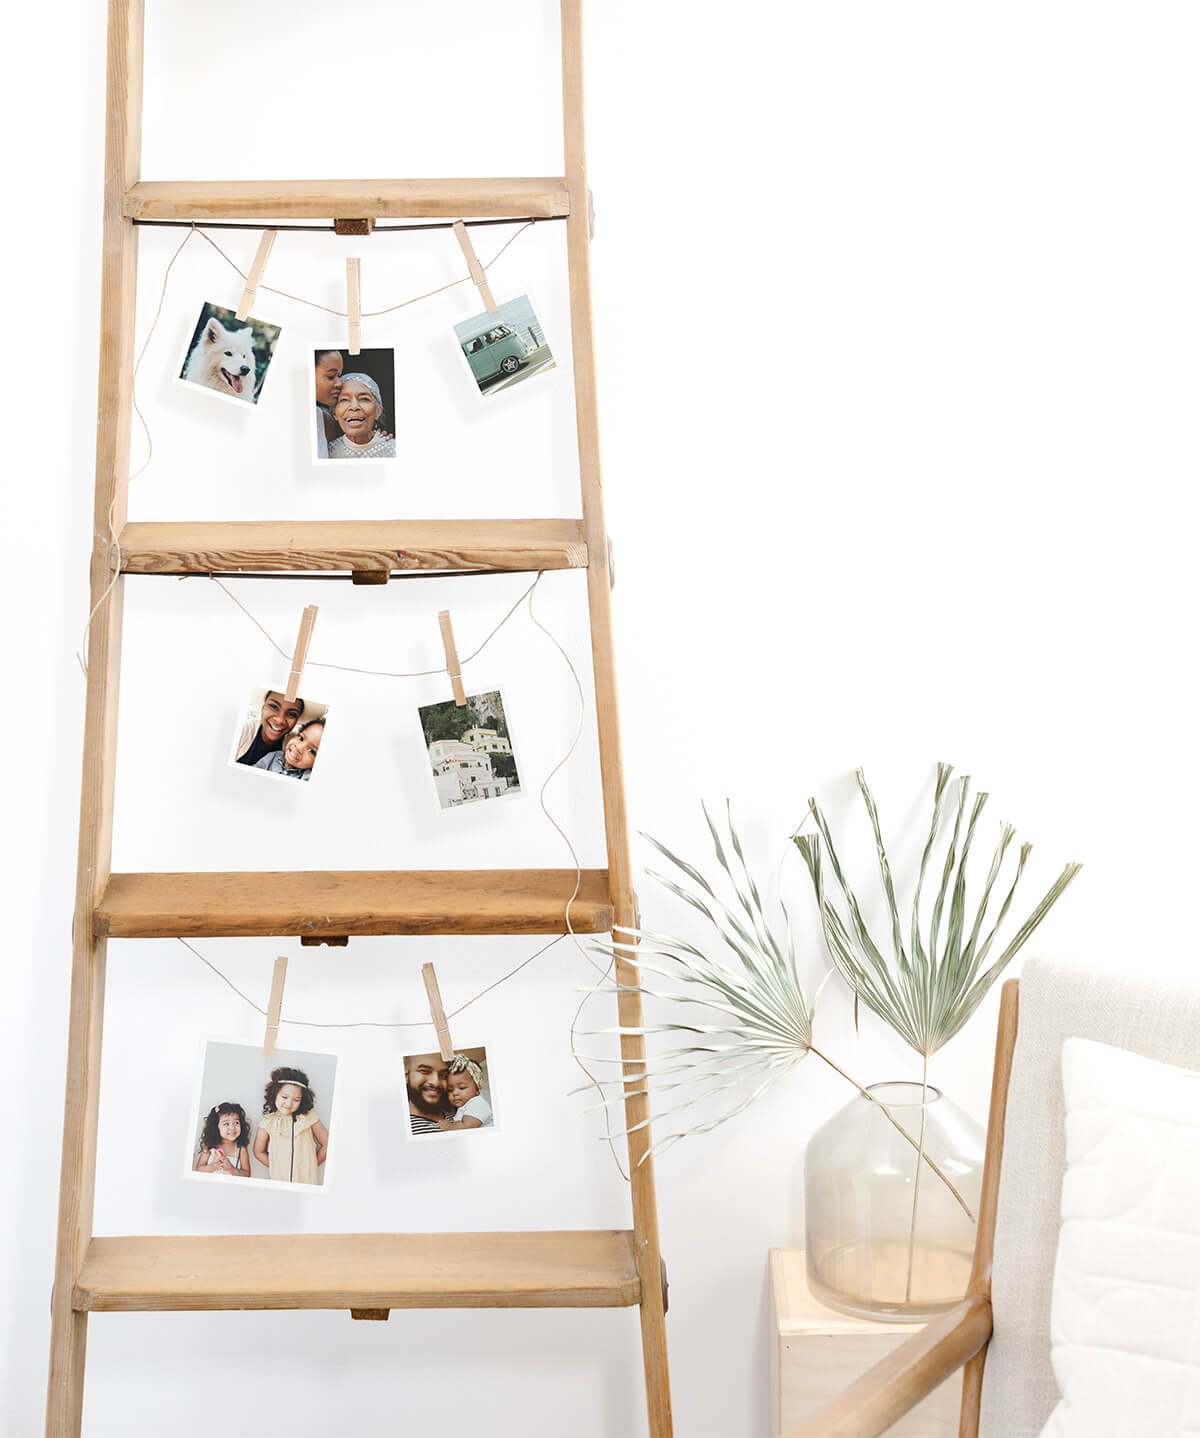 Wooden ladder repurposed for creative photo display